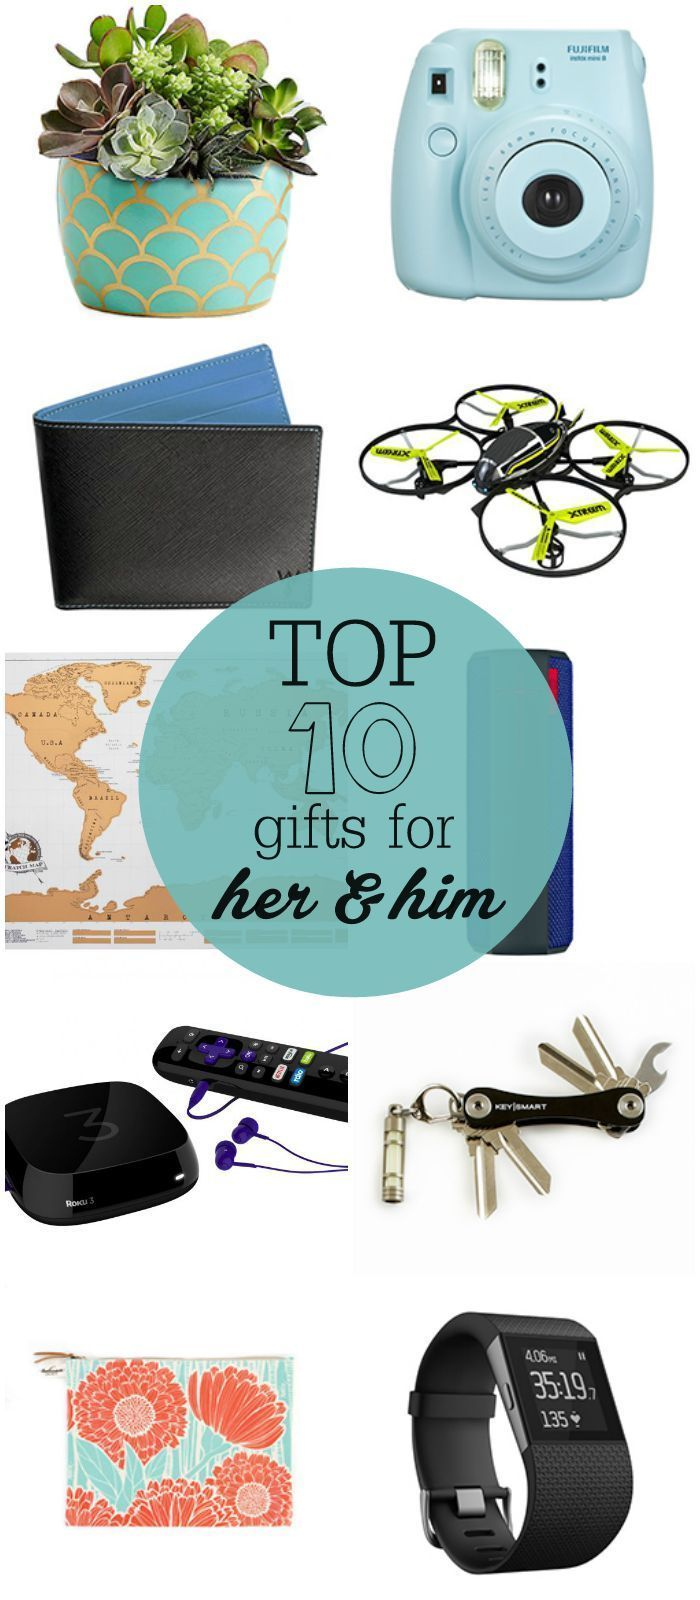 Top 10 gifts for christmas for her